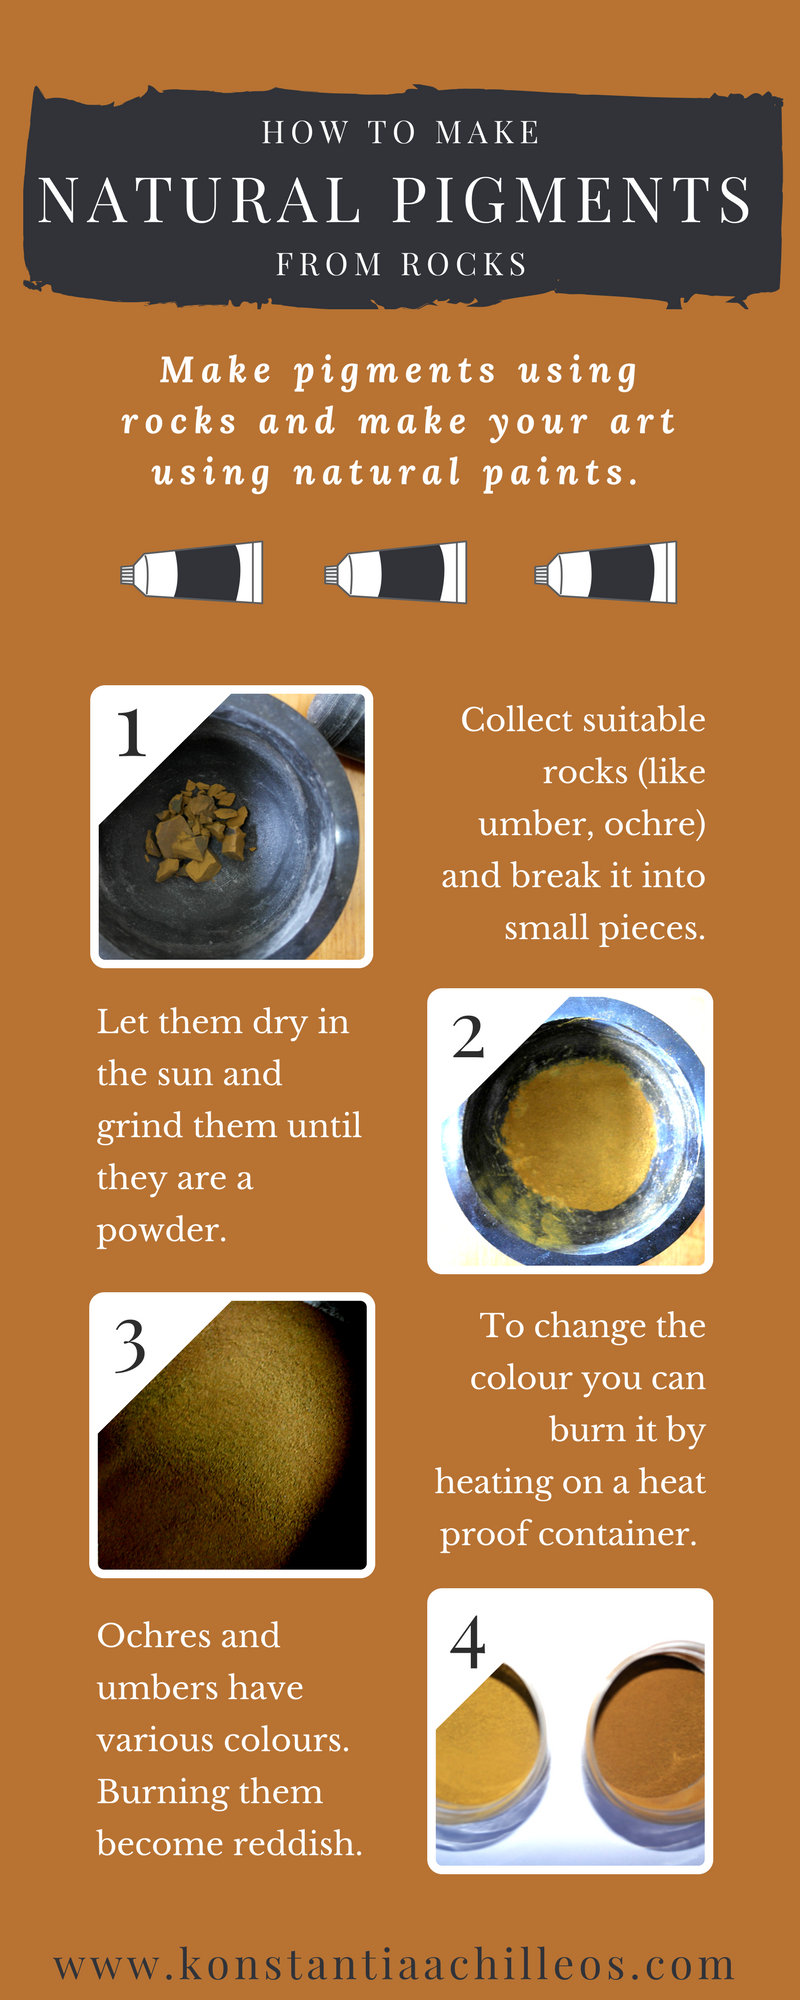 Natural Pigments Are Rocks That You Can Turn Them Into Paints